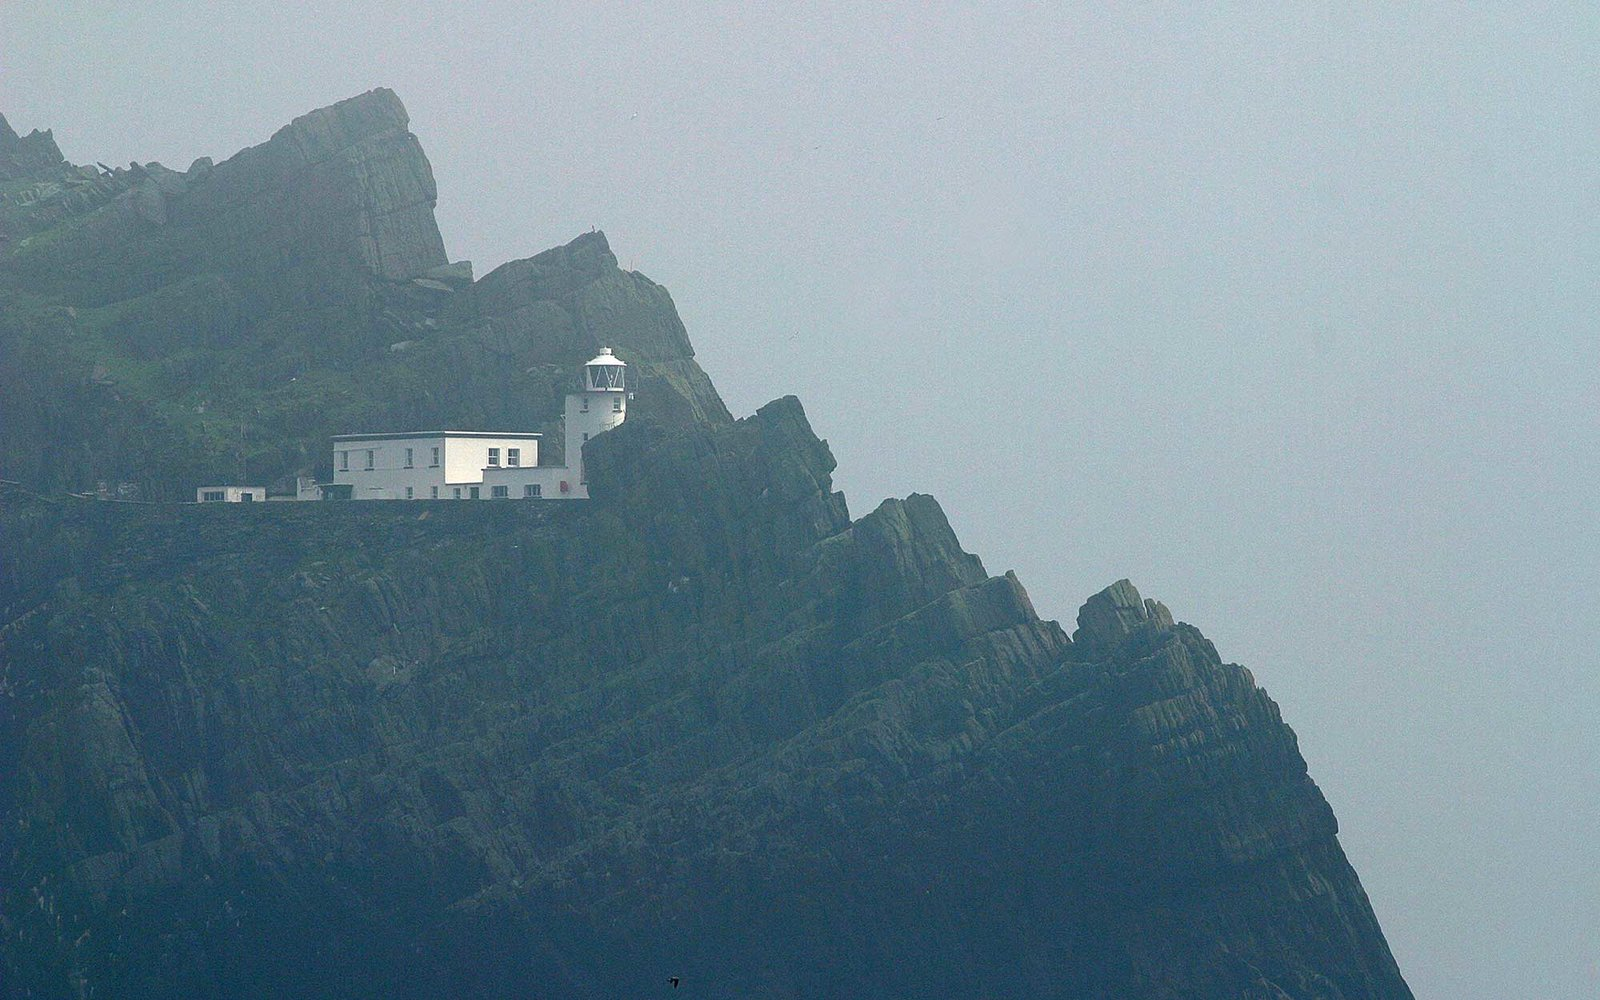 The lighthouse of Skellig Michael nestles among the highest rocks.